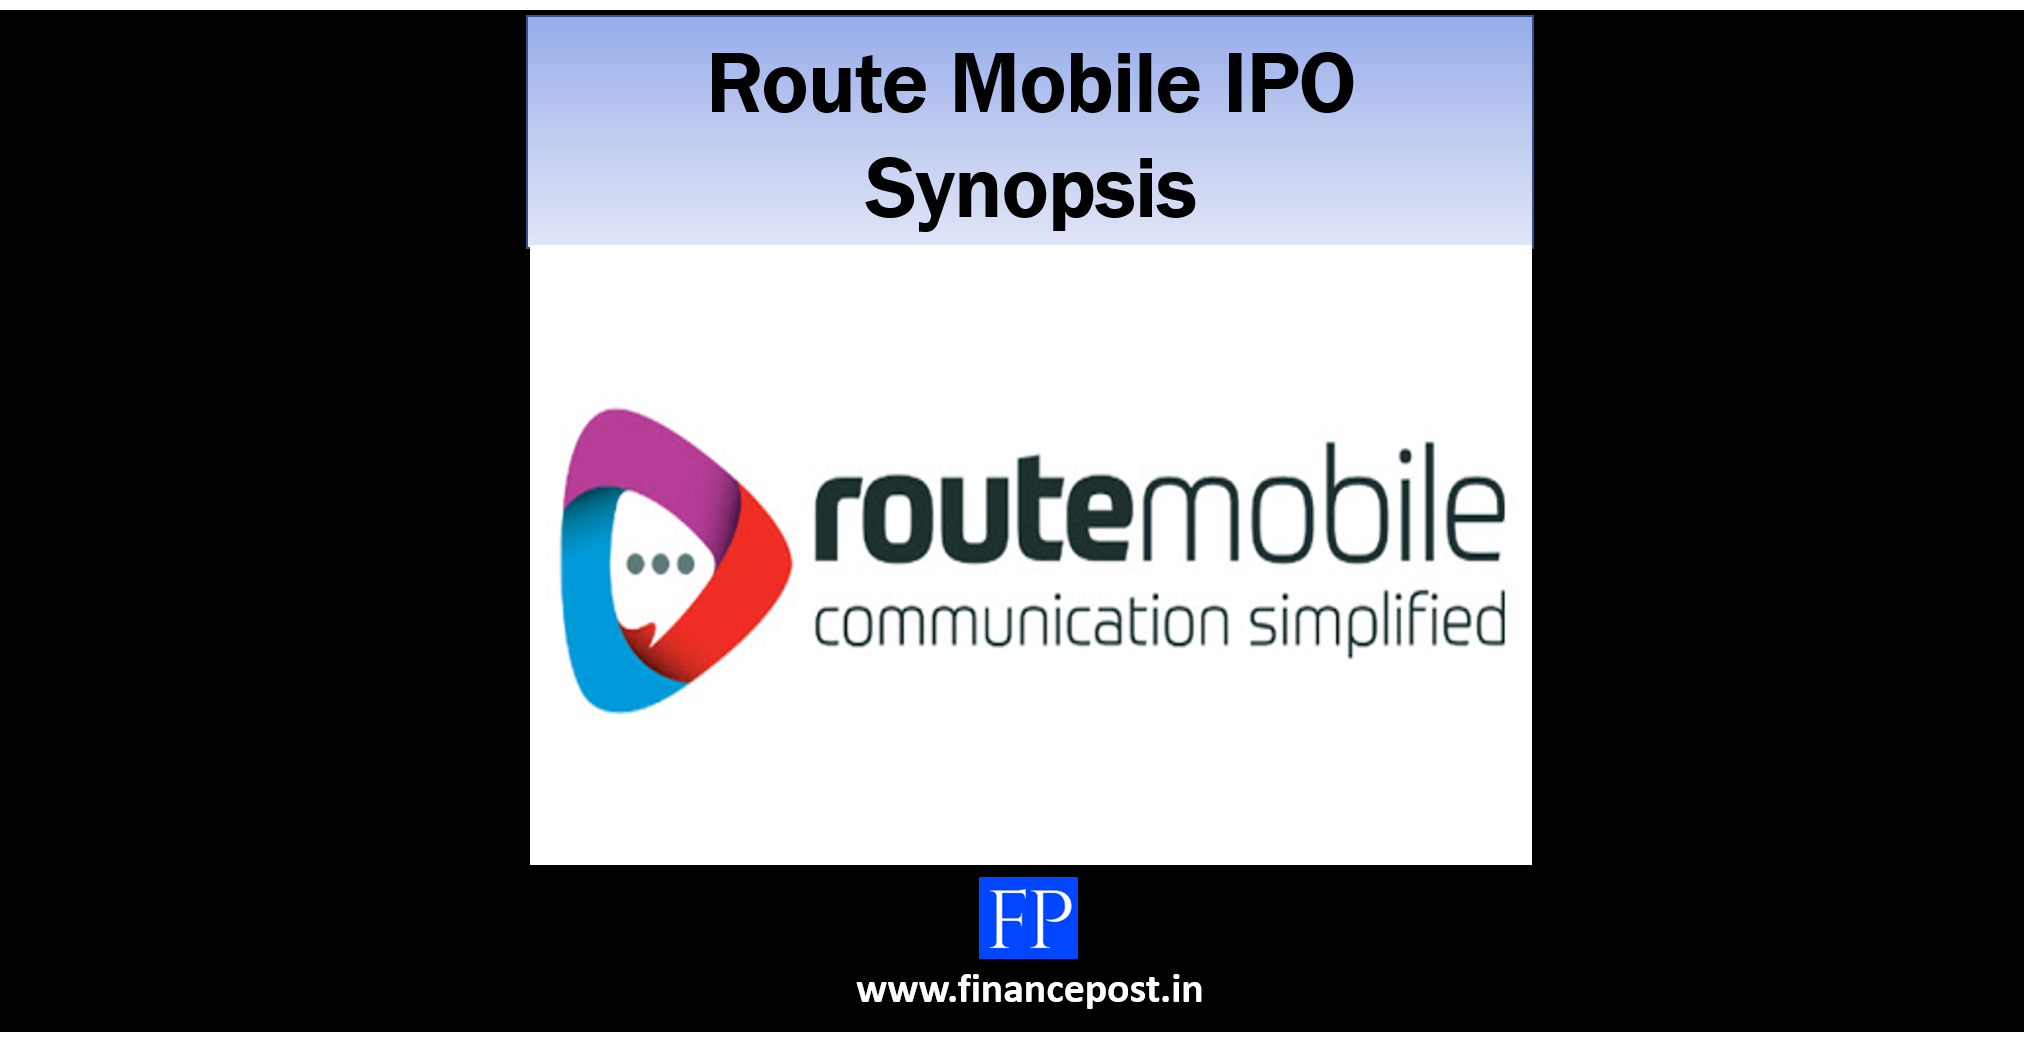 Route Mobile IPO Synopsis